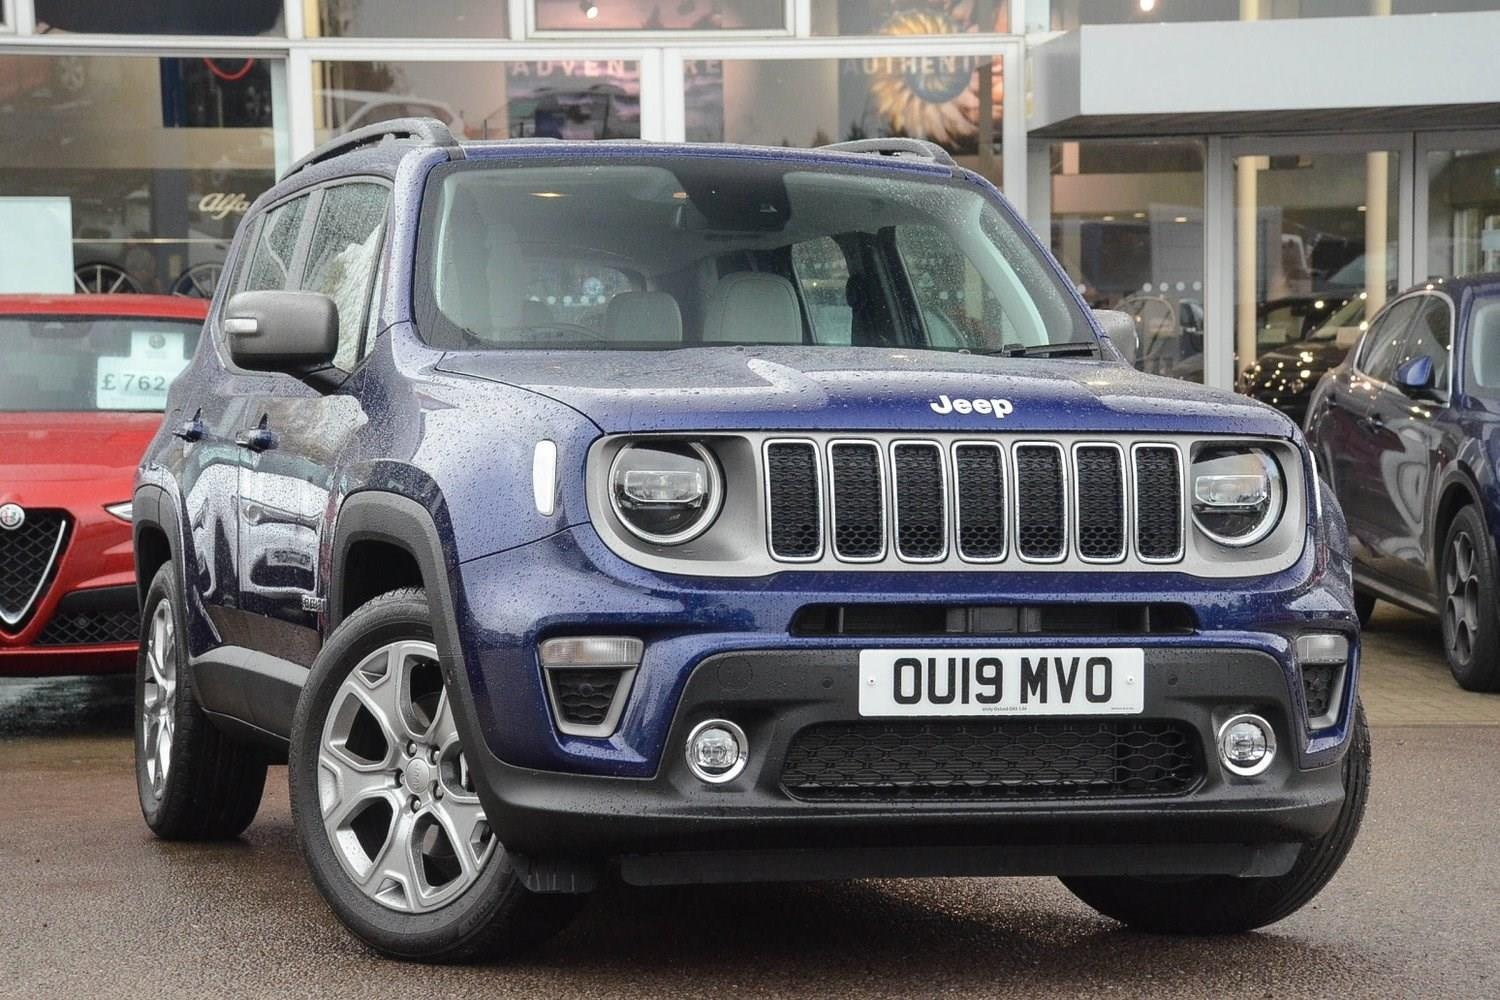 Jeep Renegade 1.0 GSE (120bhp) Limited (s/s) Estate Petrol Jetset Blue Metallic